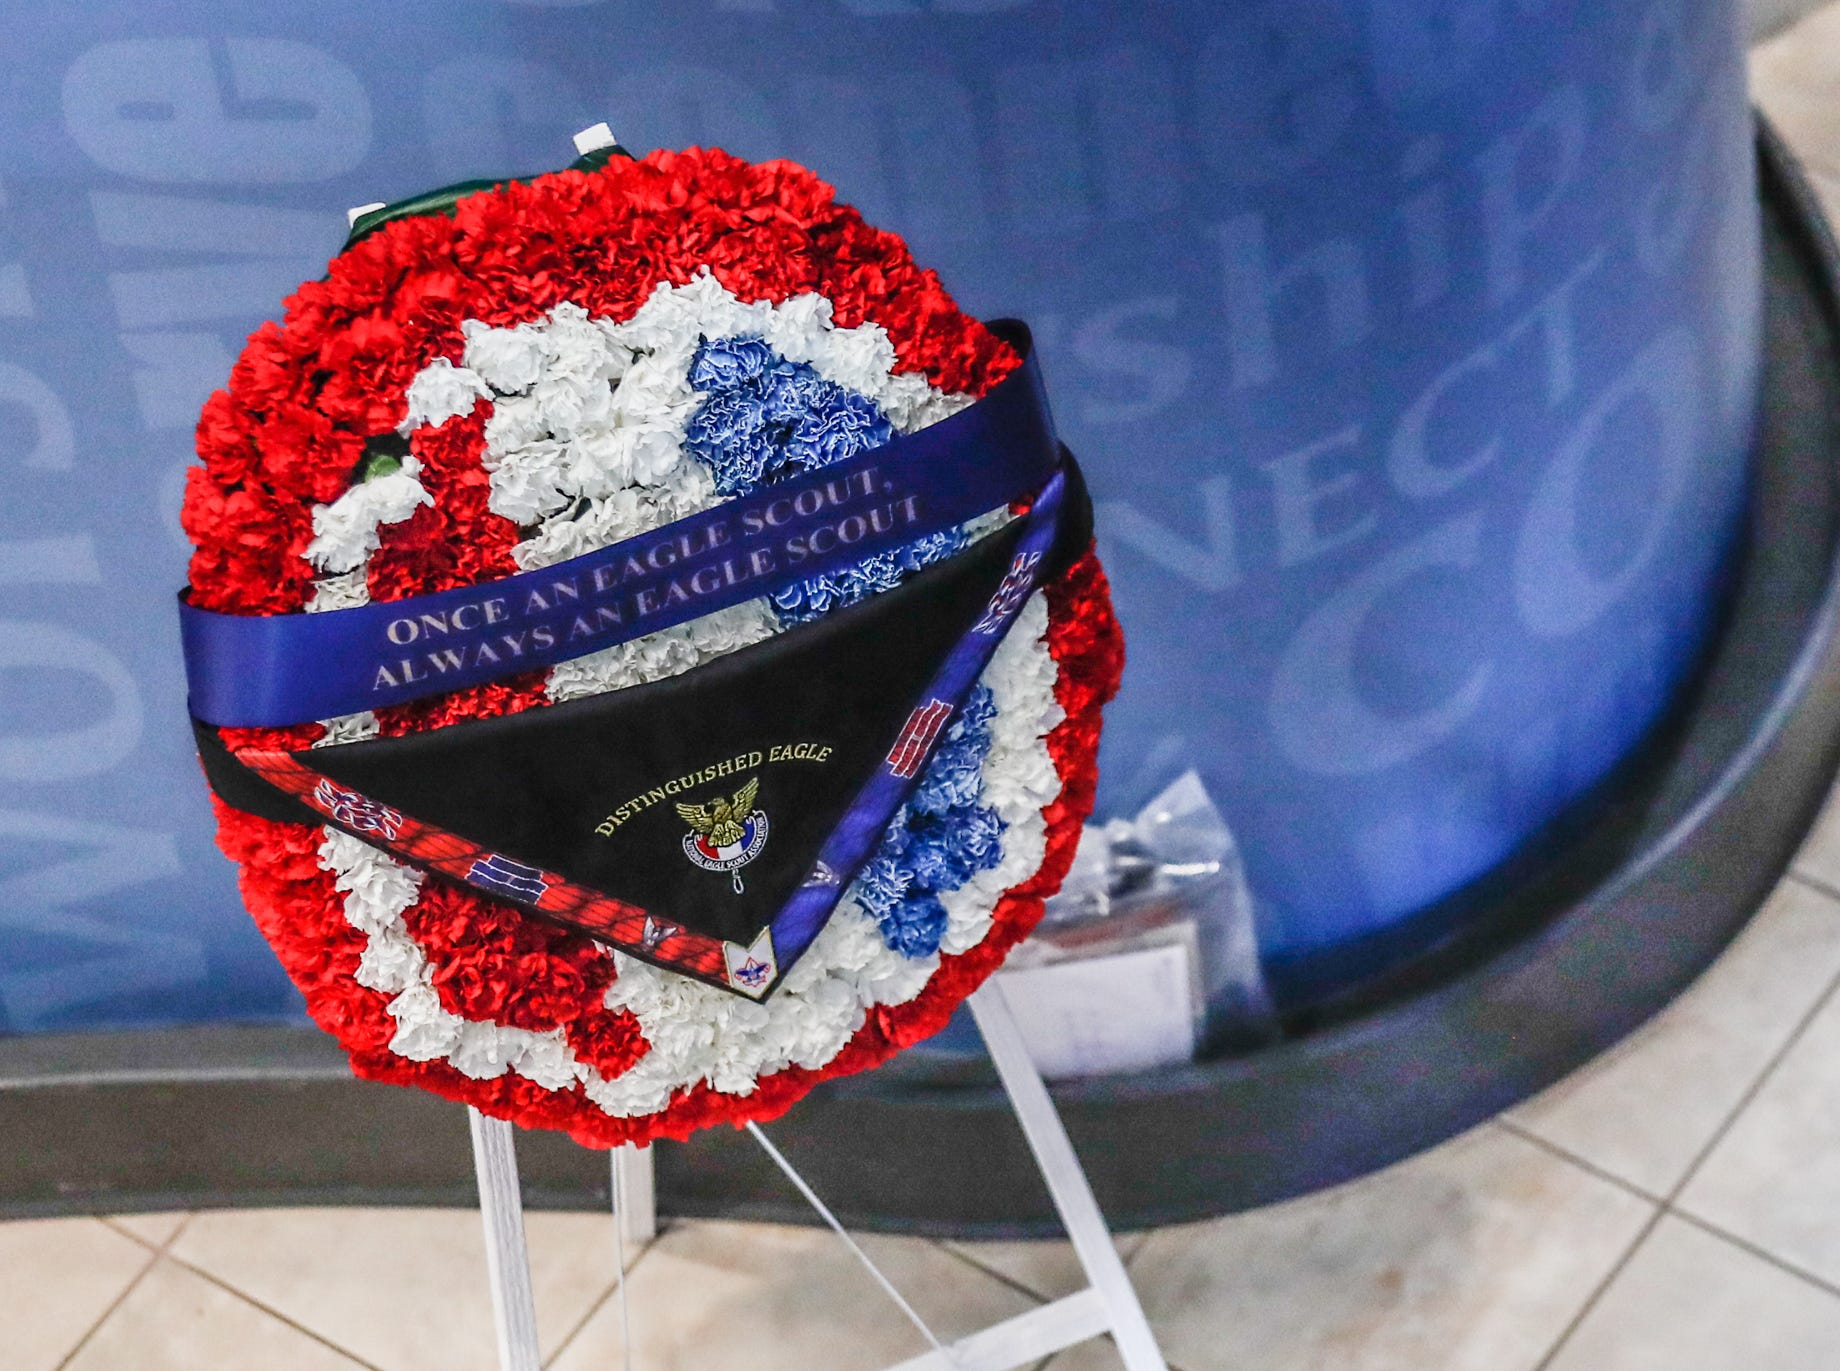 """A flowered wreath reads """"Once an Eagle Scout, always an Eagle Scout"""" at a memorial service held for Eagle Scout and former U.S. Sen. Richard Lugar held at Saint Luke's United Methodist Church in Indianapolis, on Wednesday, May 15, 2019. Lugar served as mayor of Indianapolis from 1968 to 1975 and U.S. senator from 1977 to 2013. He died April 28, 2019, at the age of 87."""